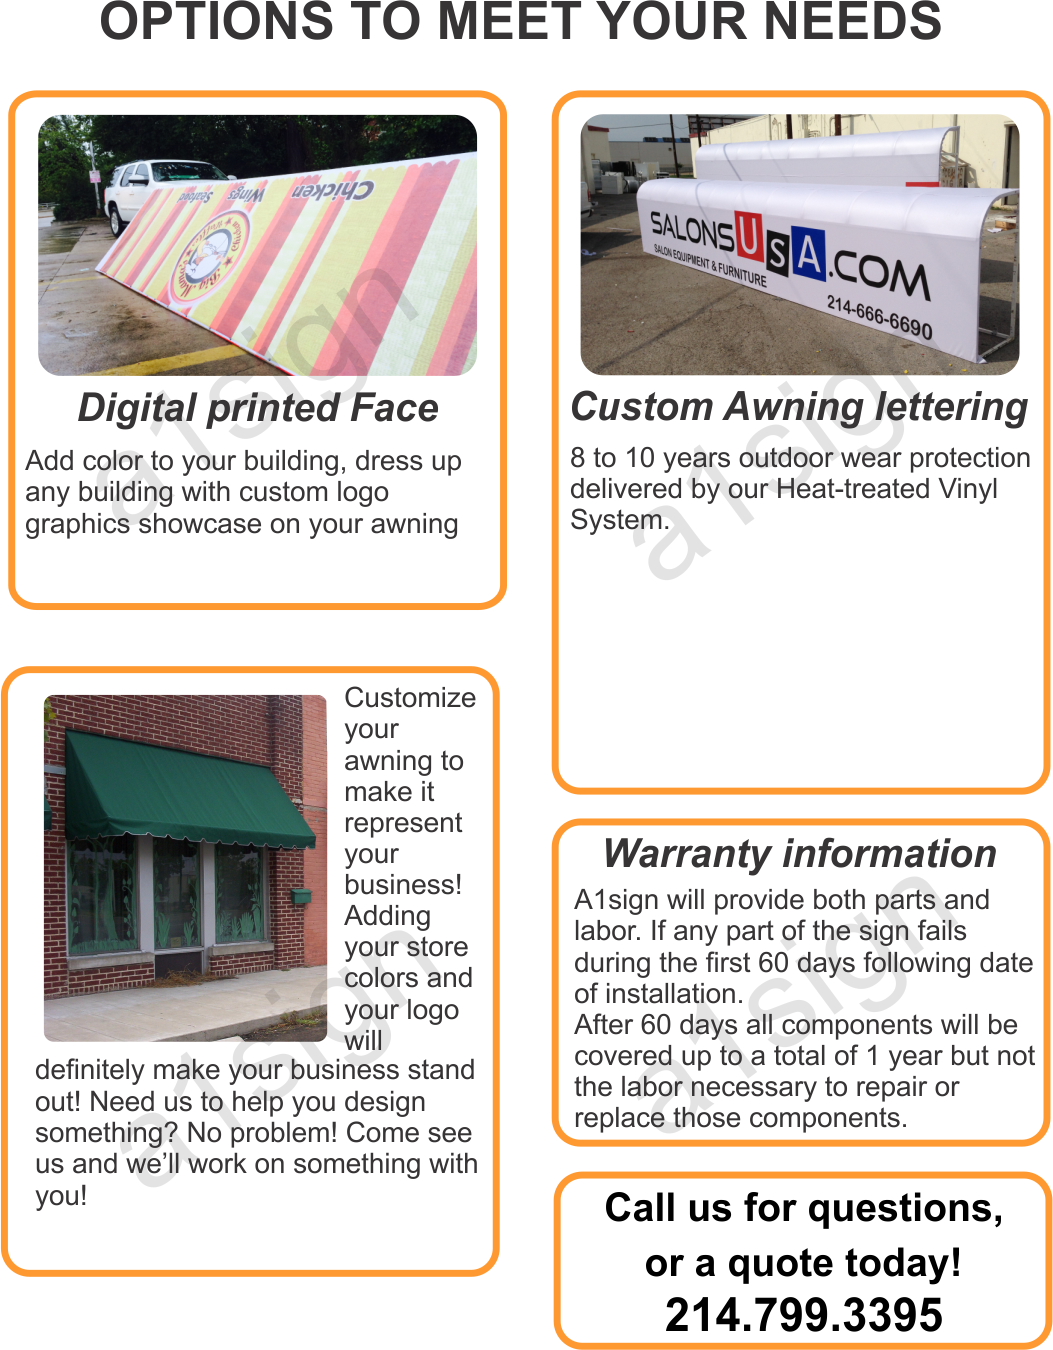 awning-page-discrip-5-.png